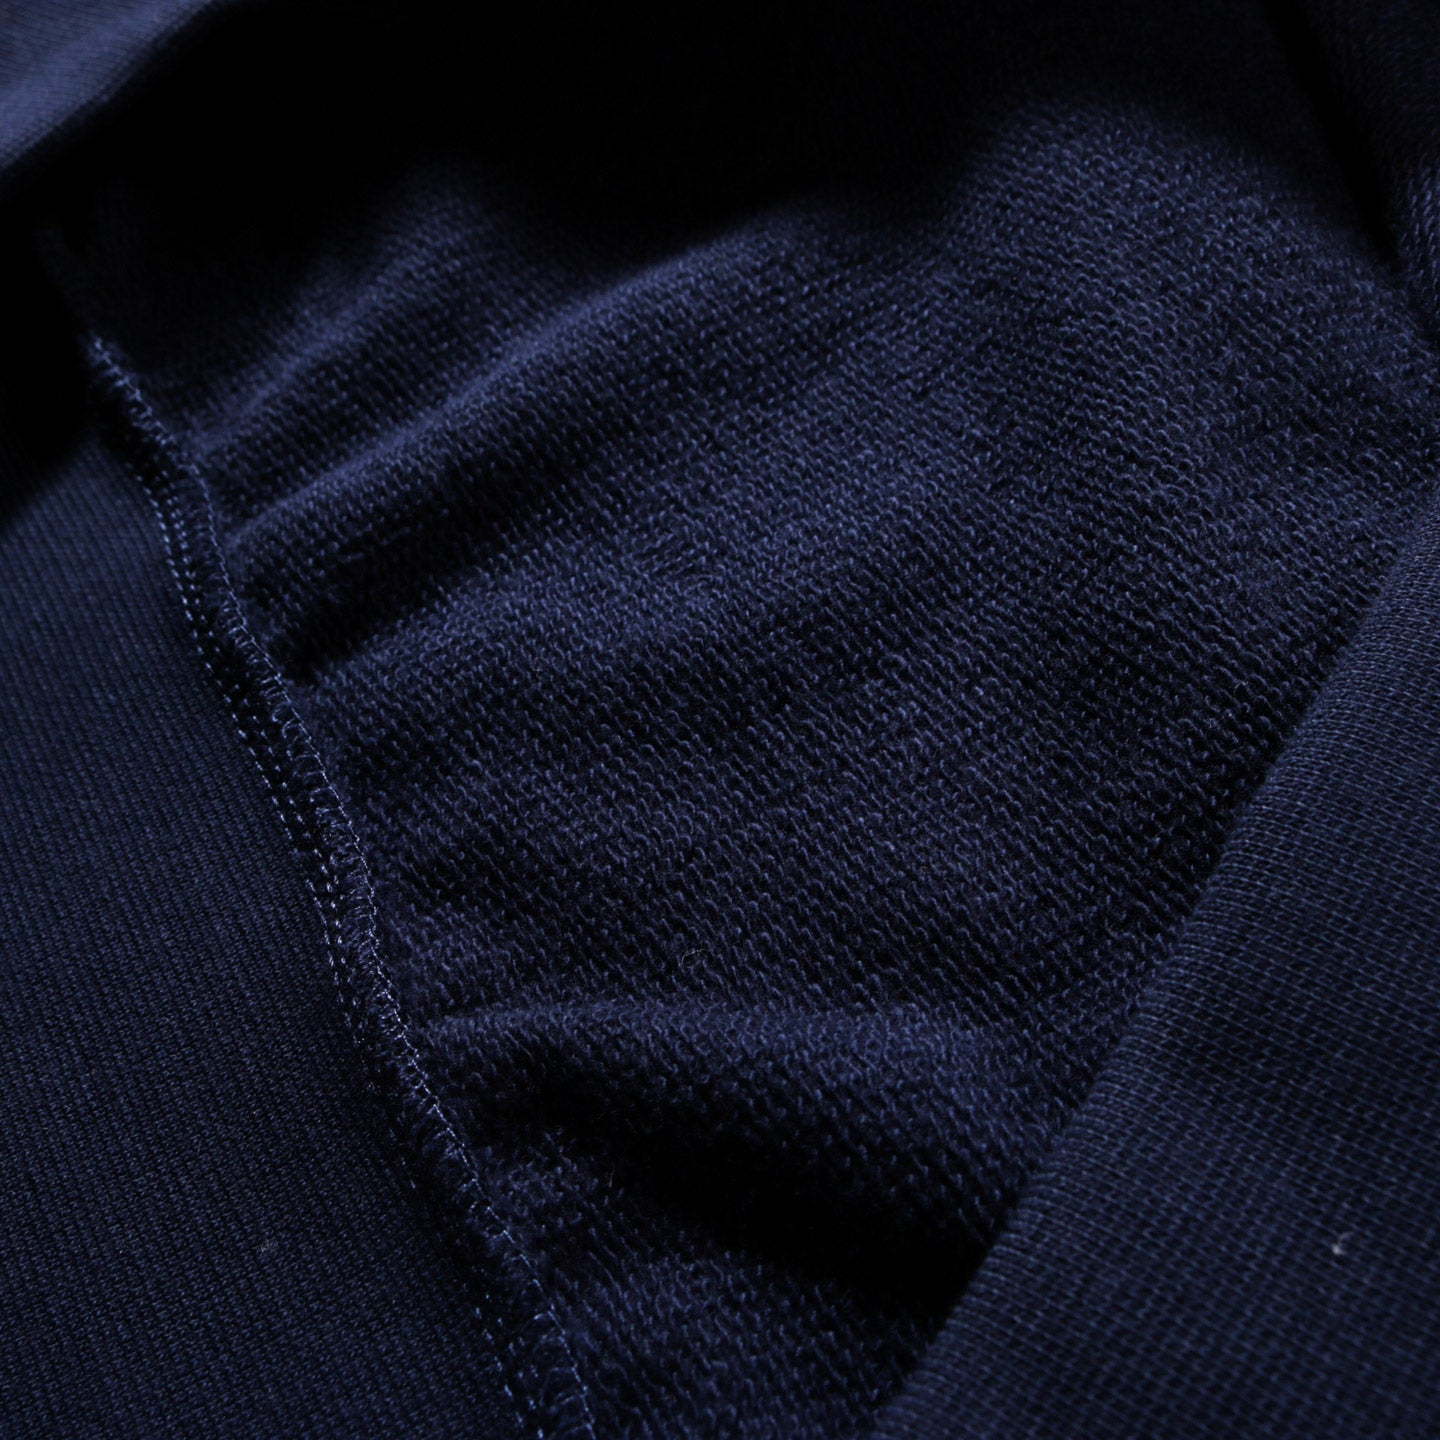 A.P.C. JJJJOUND JUSTIN SWEATSHIRT NAVY